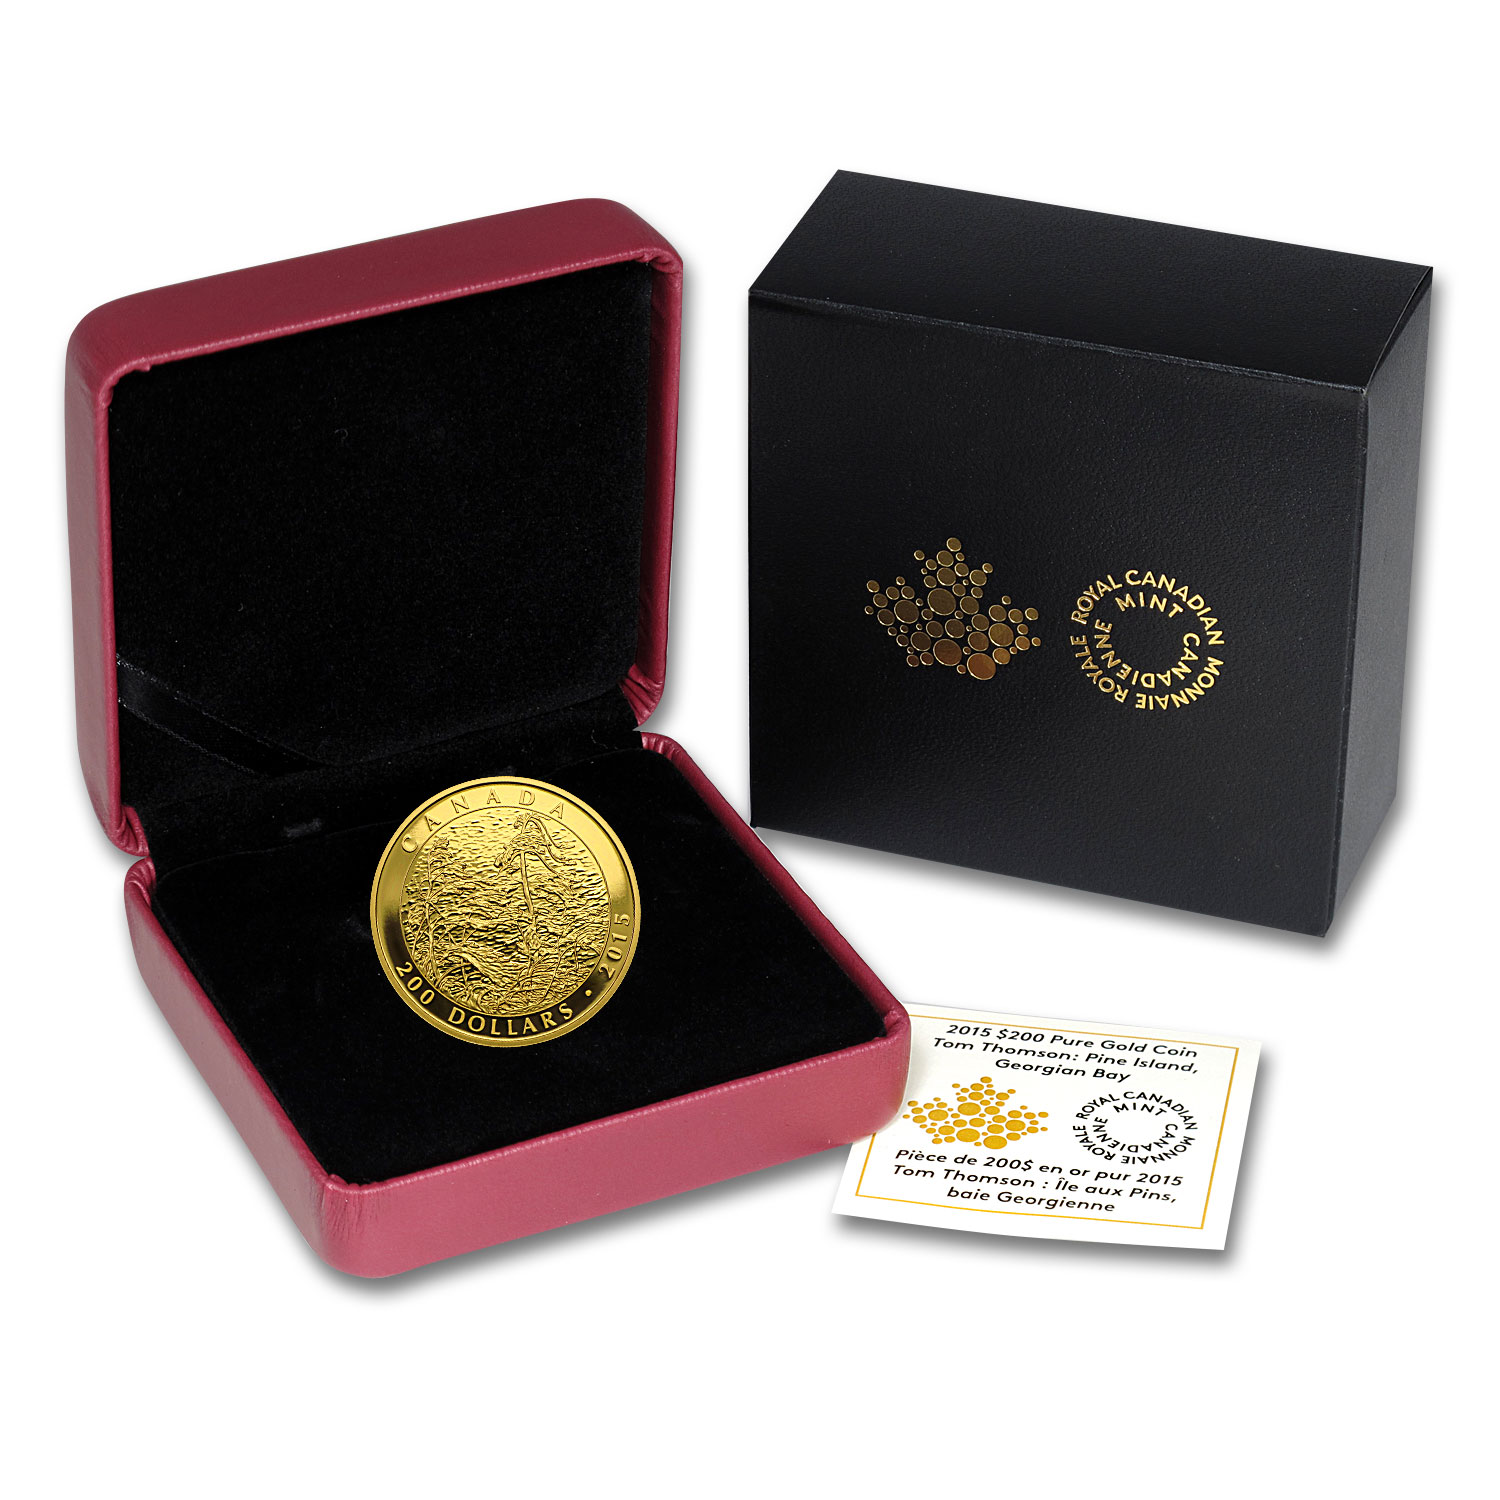 2015 Canada 1 oz Proof Gold $200 Tom Thomson: Pine Island